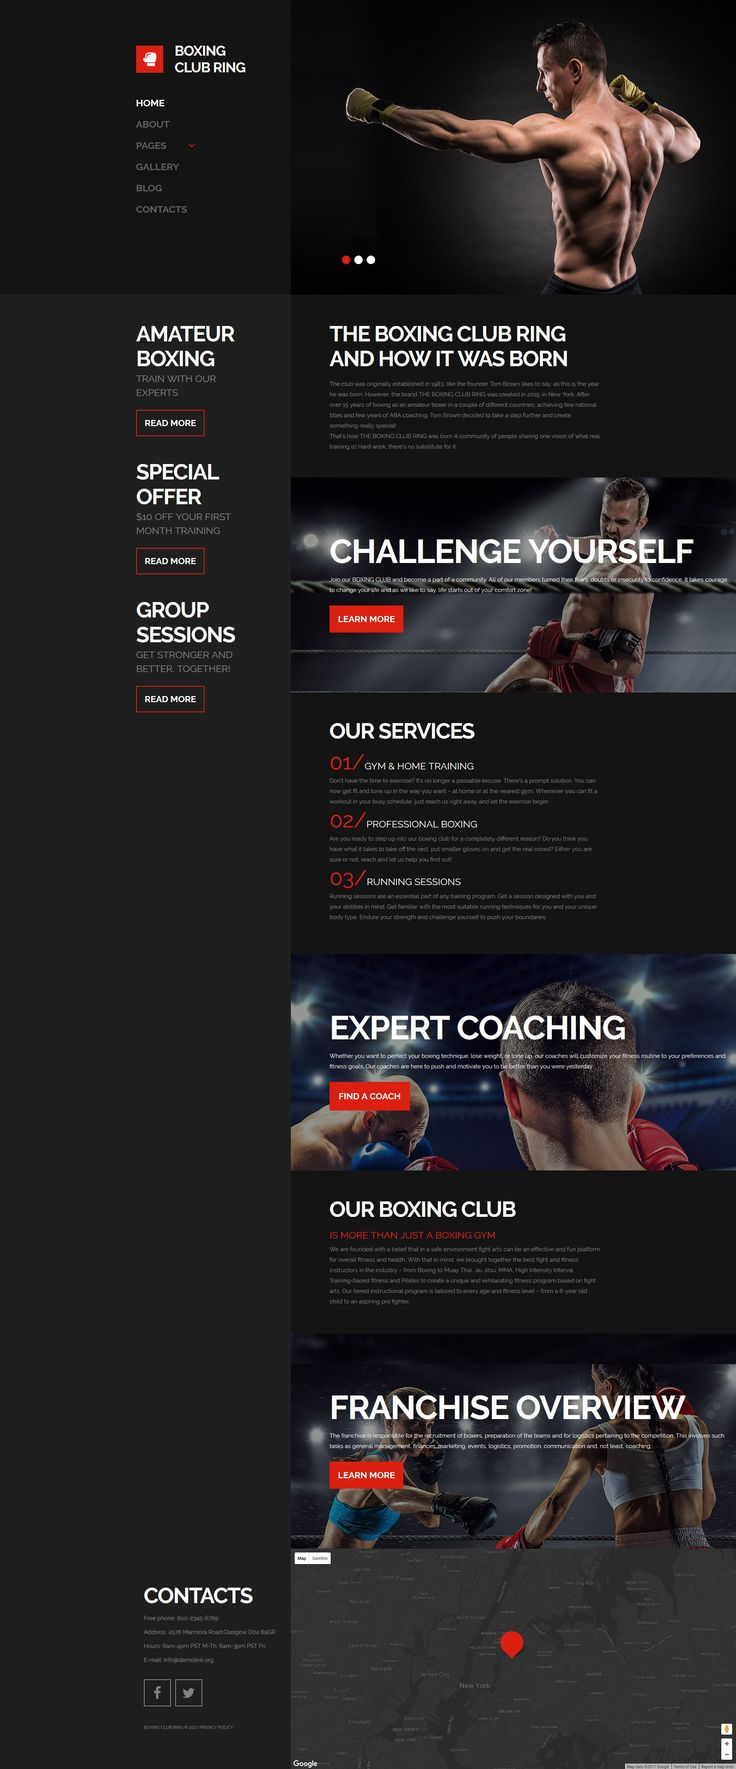 More than website templates available Choose your